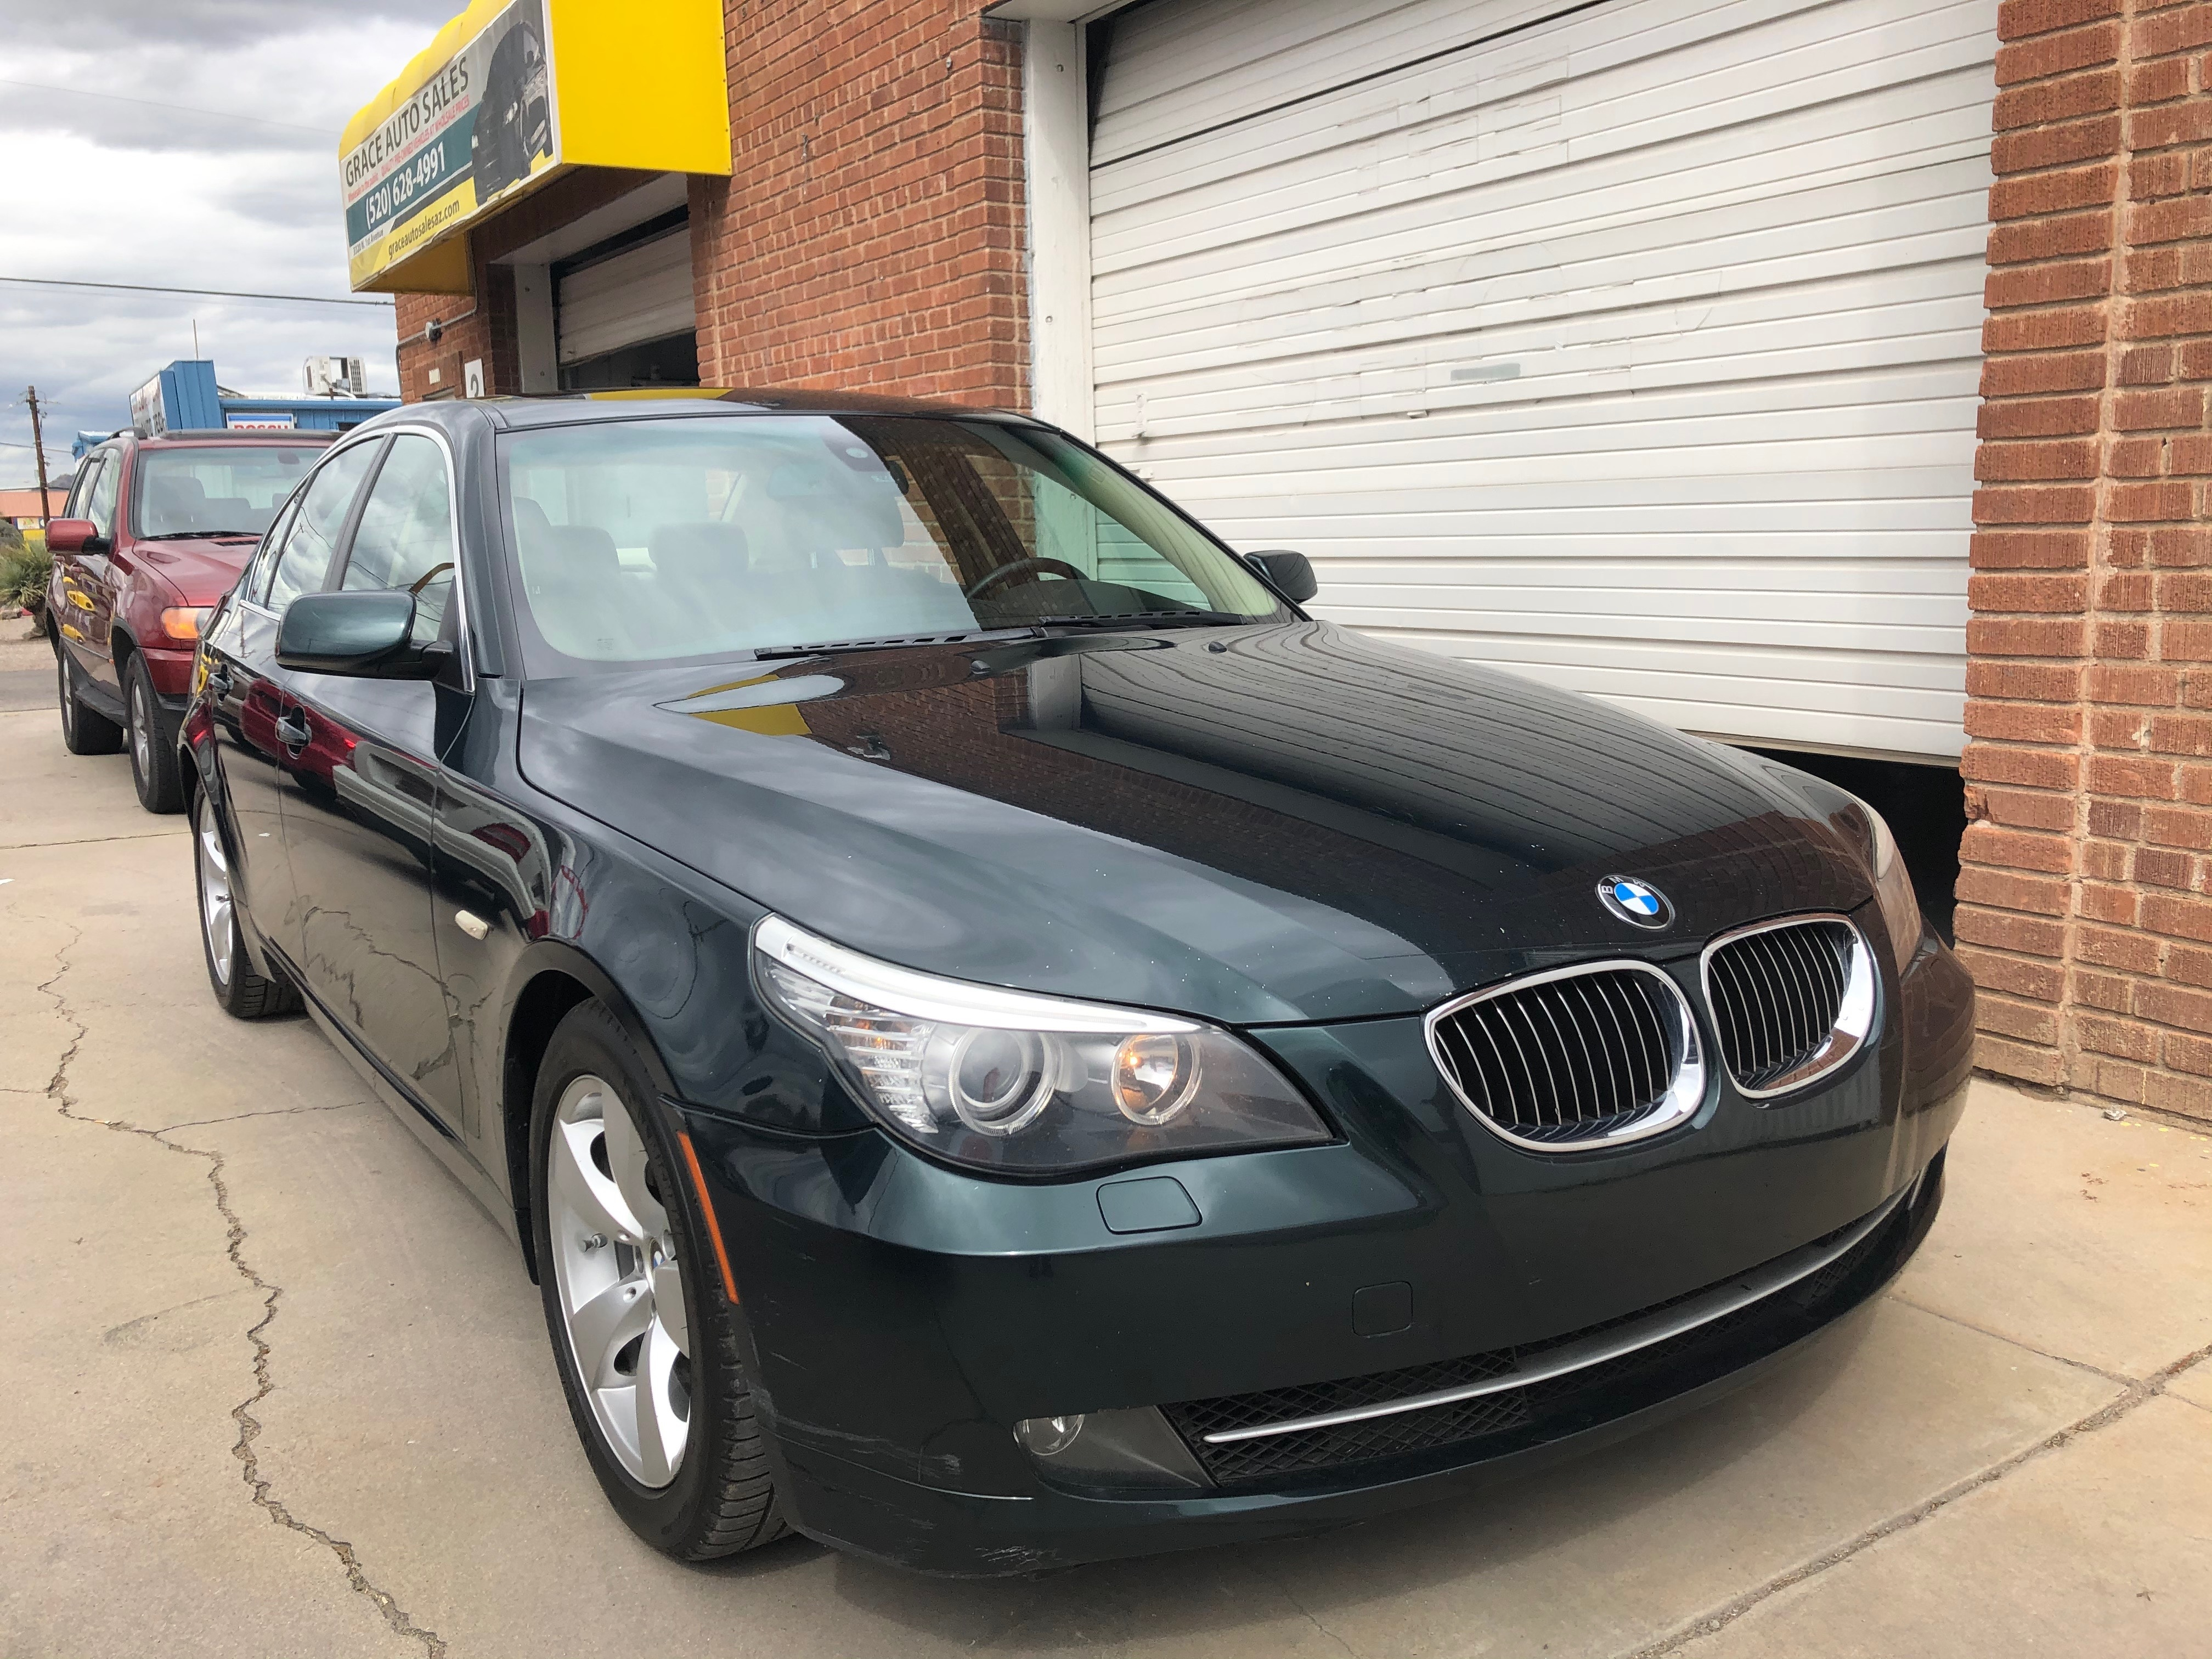 08 Bmw 528i 1owner All Options Clean In Out 135k Miles Grace Auto